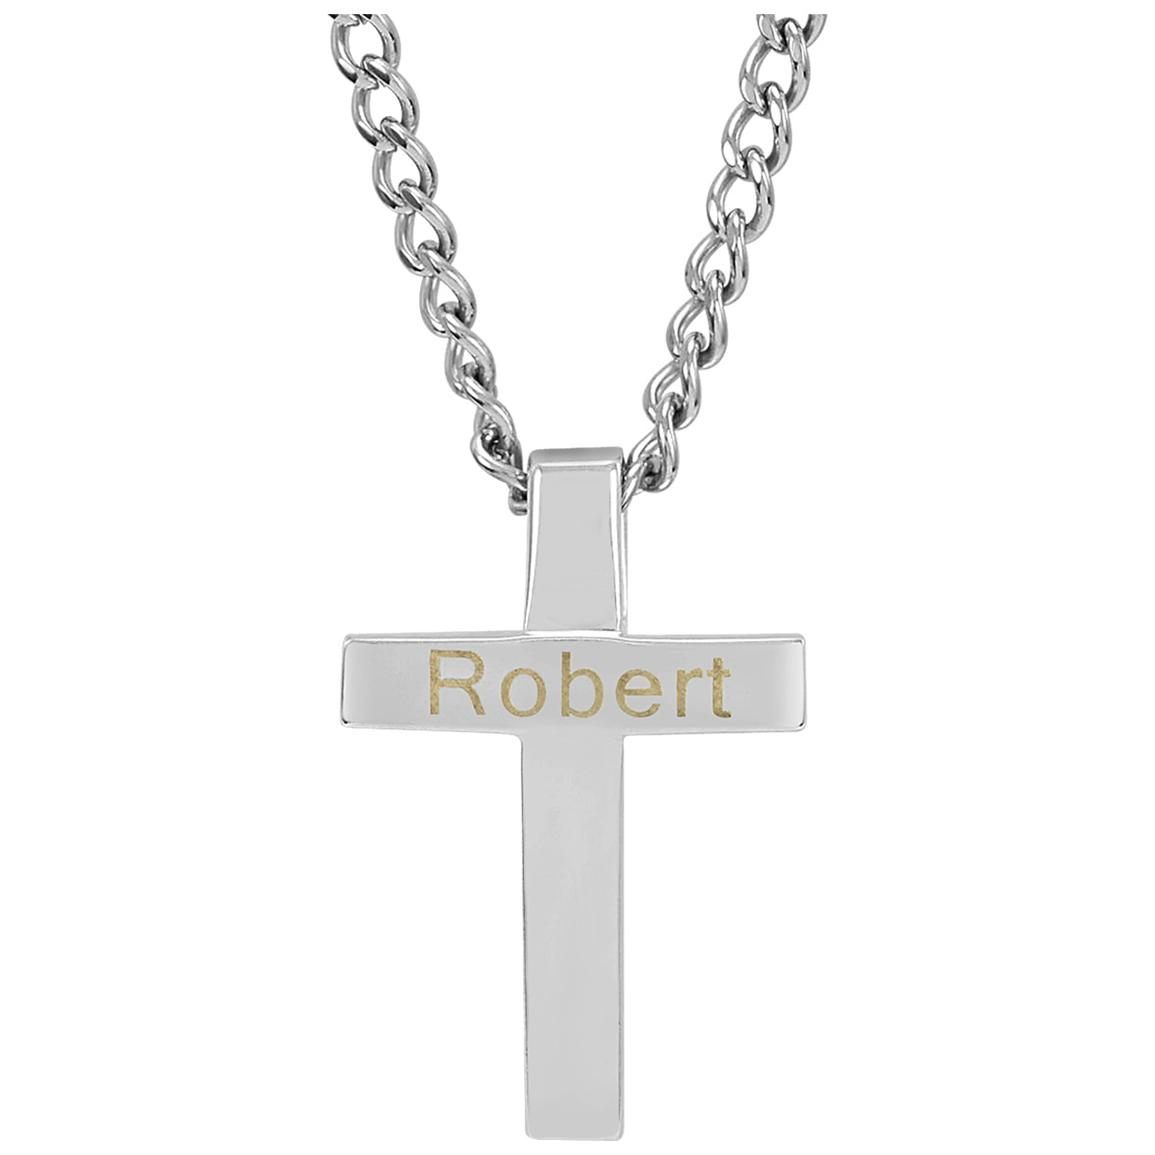 Hampden Stainless Steel Cross Name Pendant